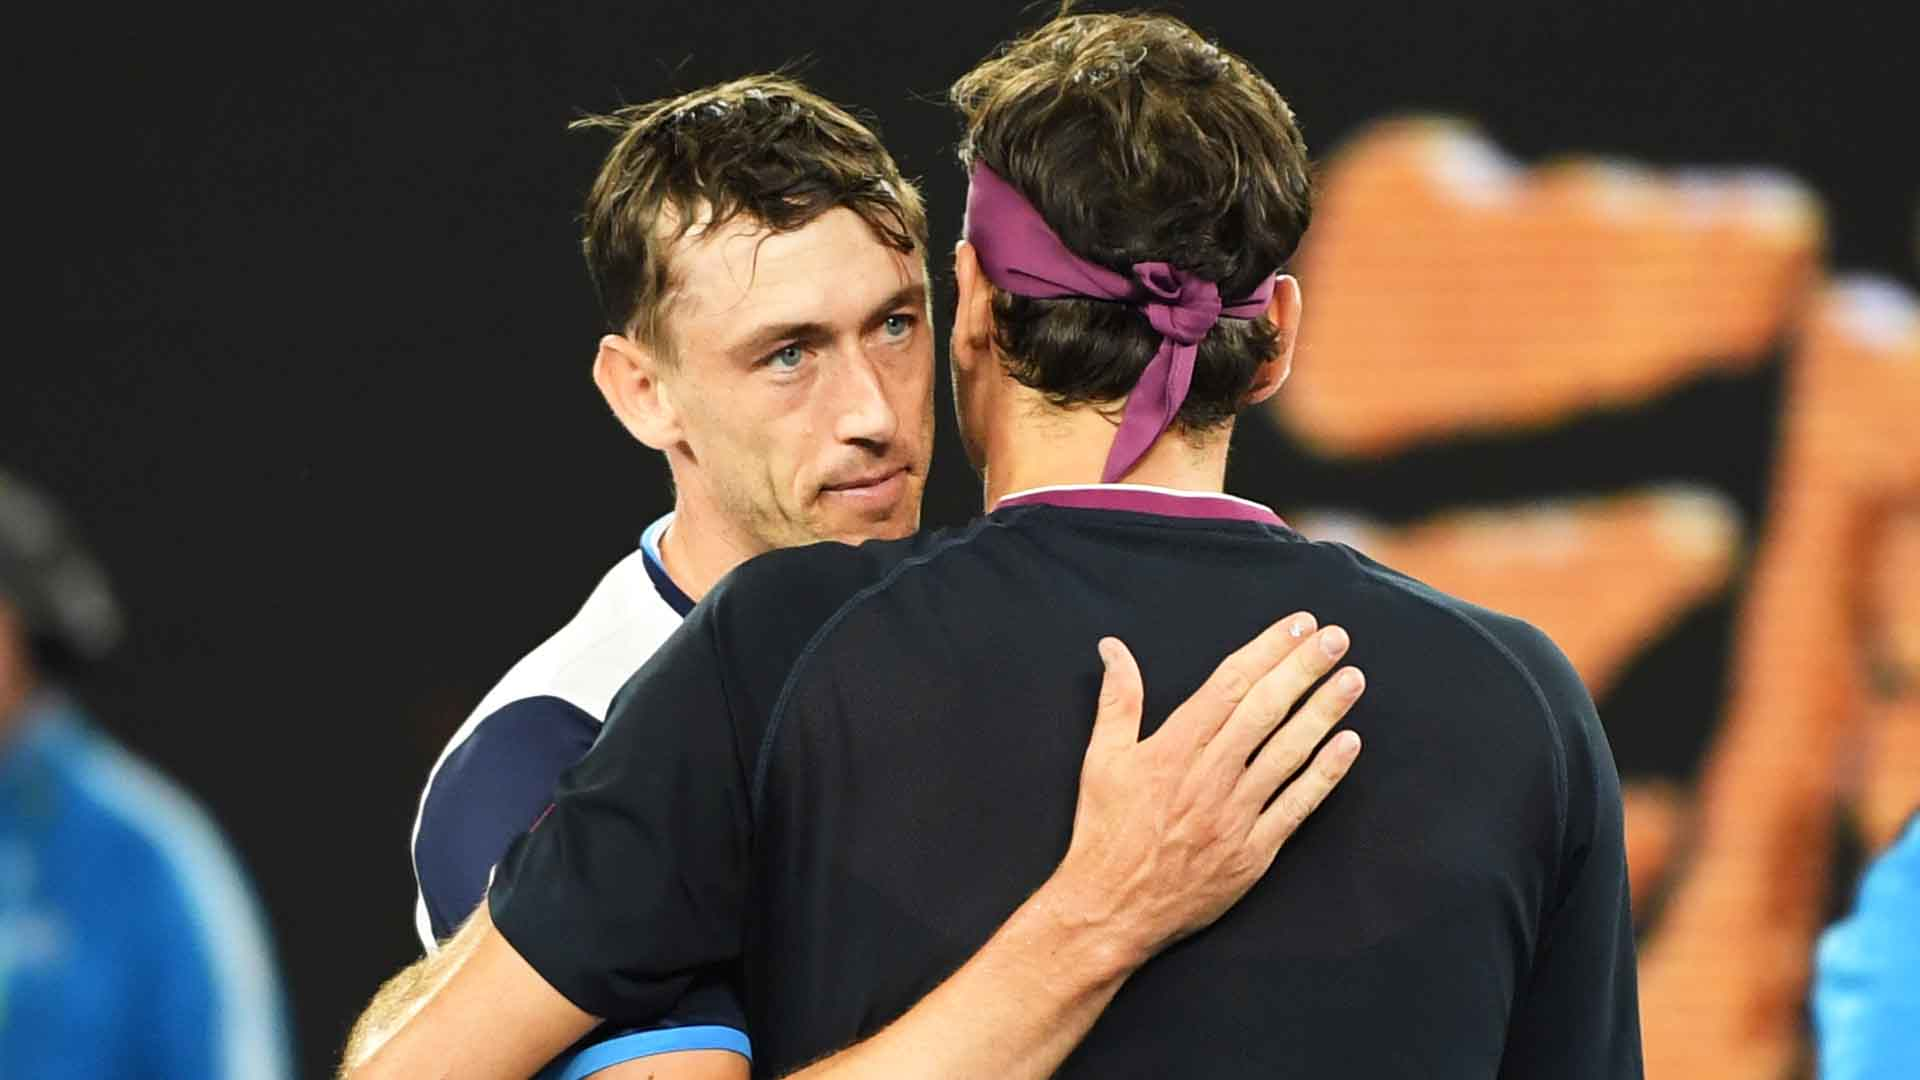 John Millman greets Roger Federer at the net following his five-set loss to the six-time Australian Open champion on Friday.